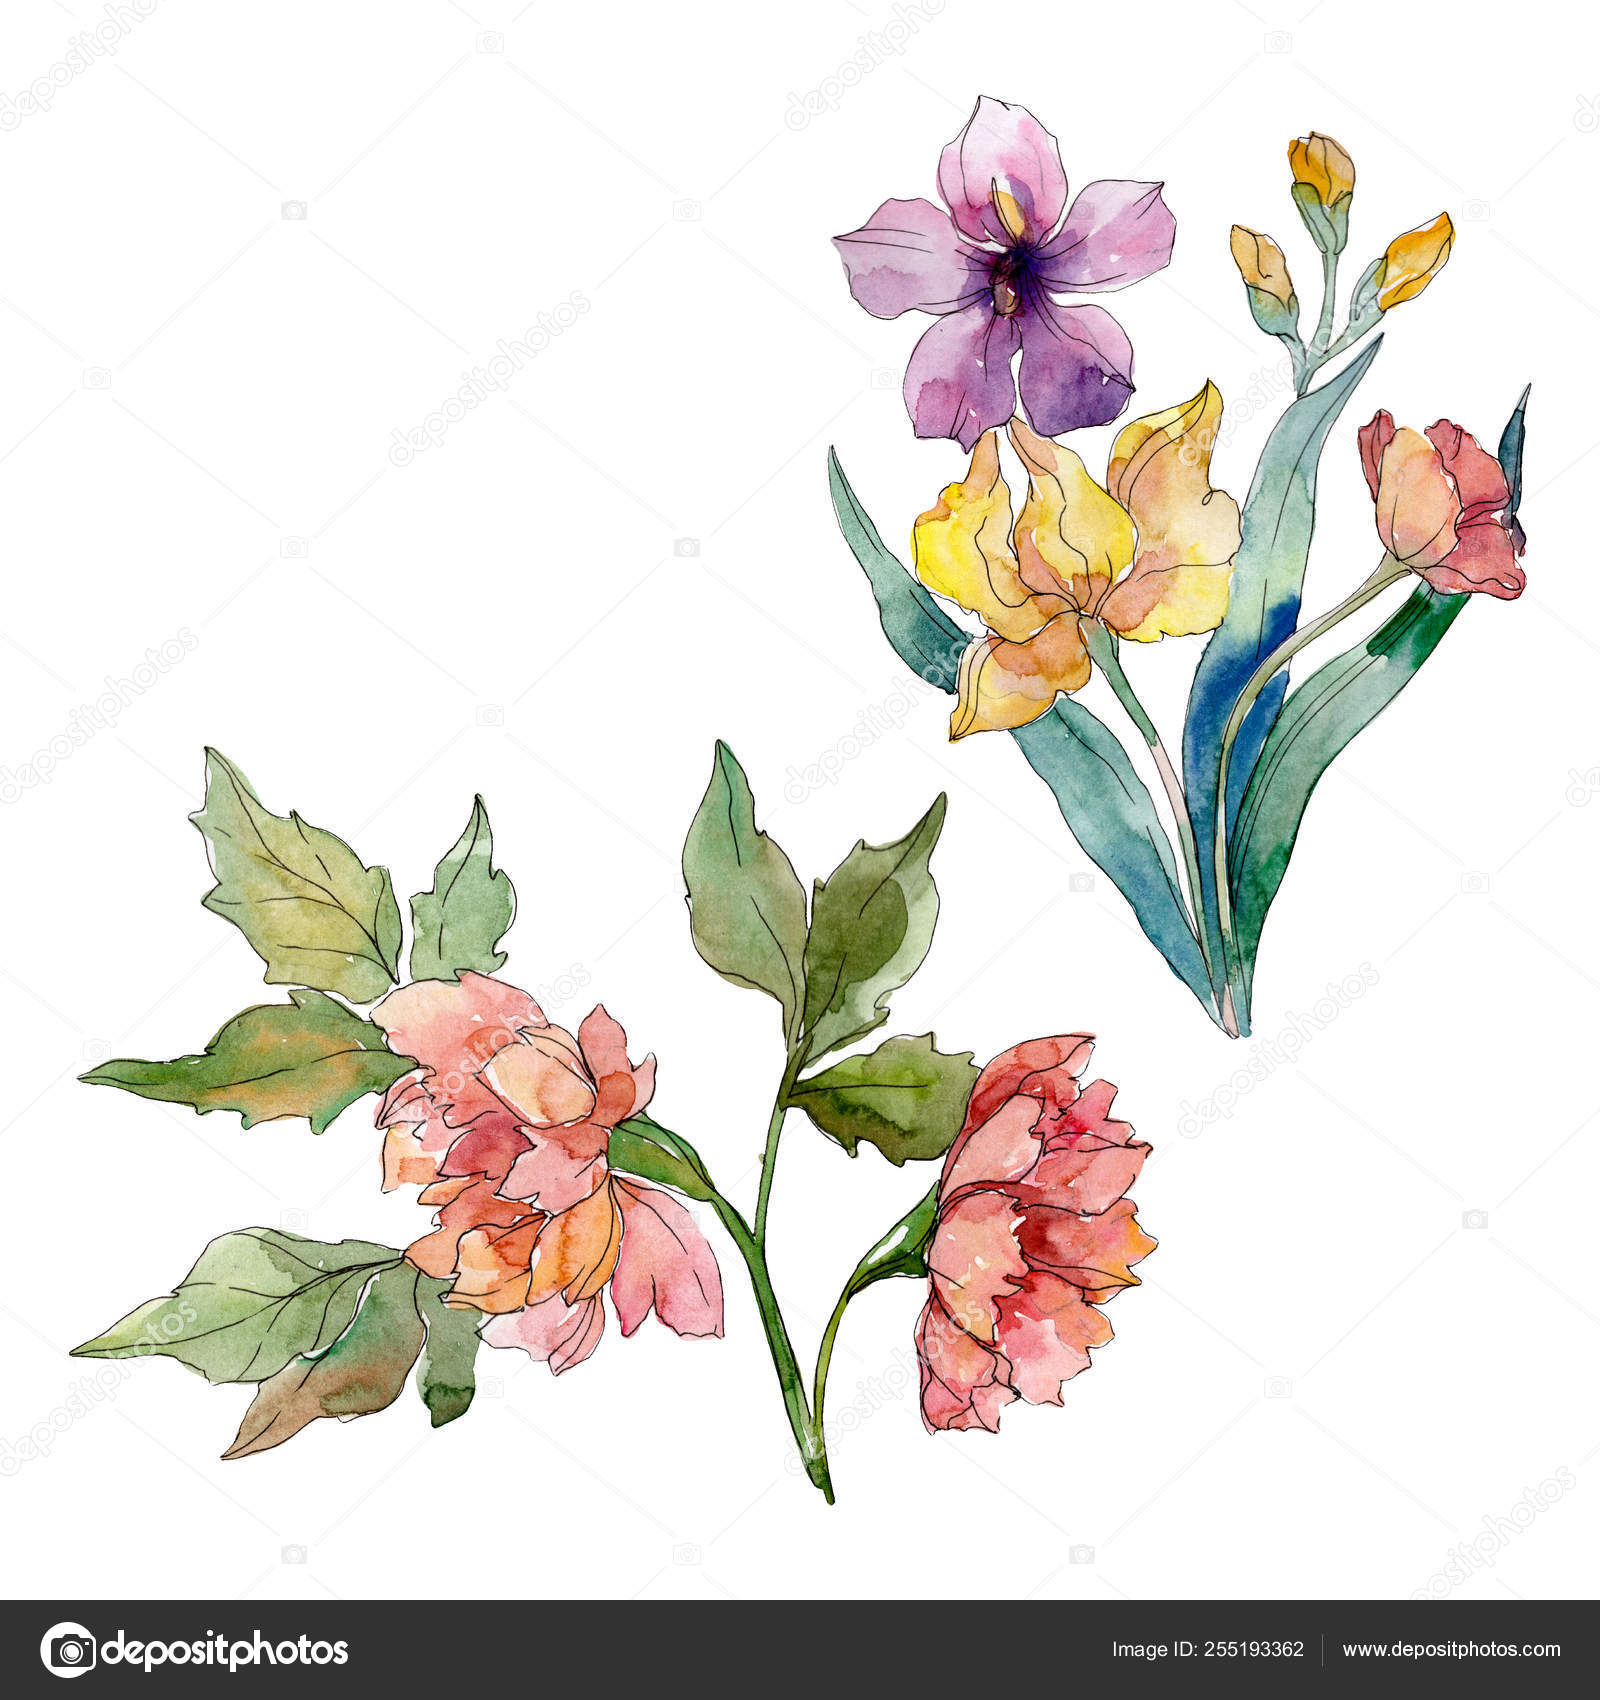 Wildflower Bouquet Floral Botanical Flowers Watercolor Background Set Isolated Wildflowers Illustration Element Stock Photo Image By C Mystocks 255193362